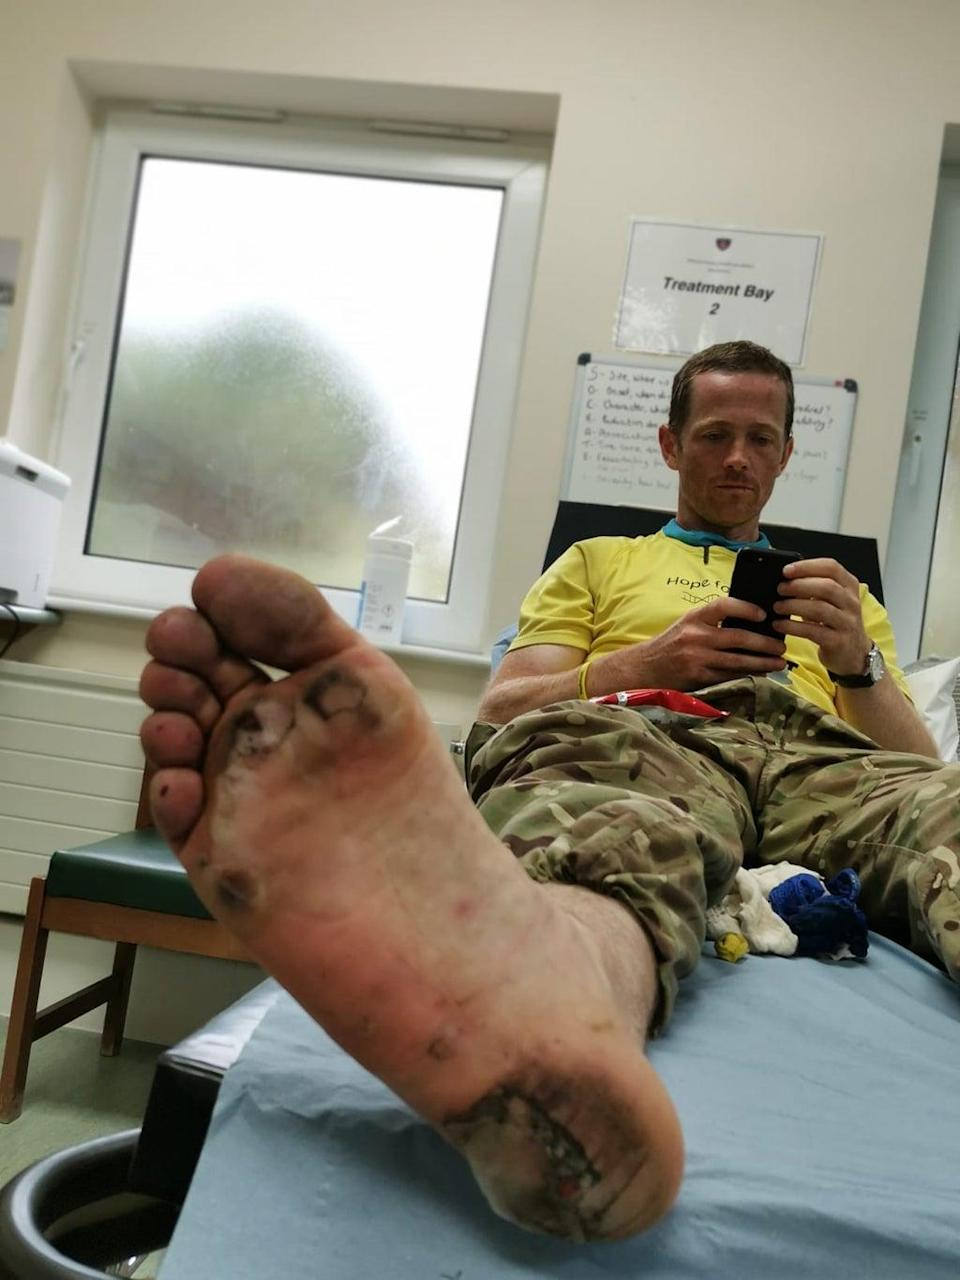 Major Chris Brannigan suffered blisters and infections during his previous barefoot trek (Chris Brannigan/PA)